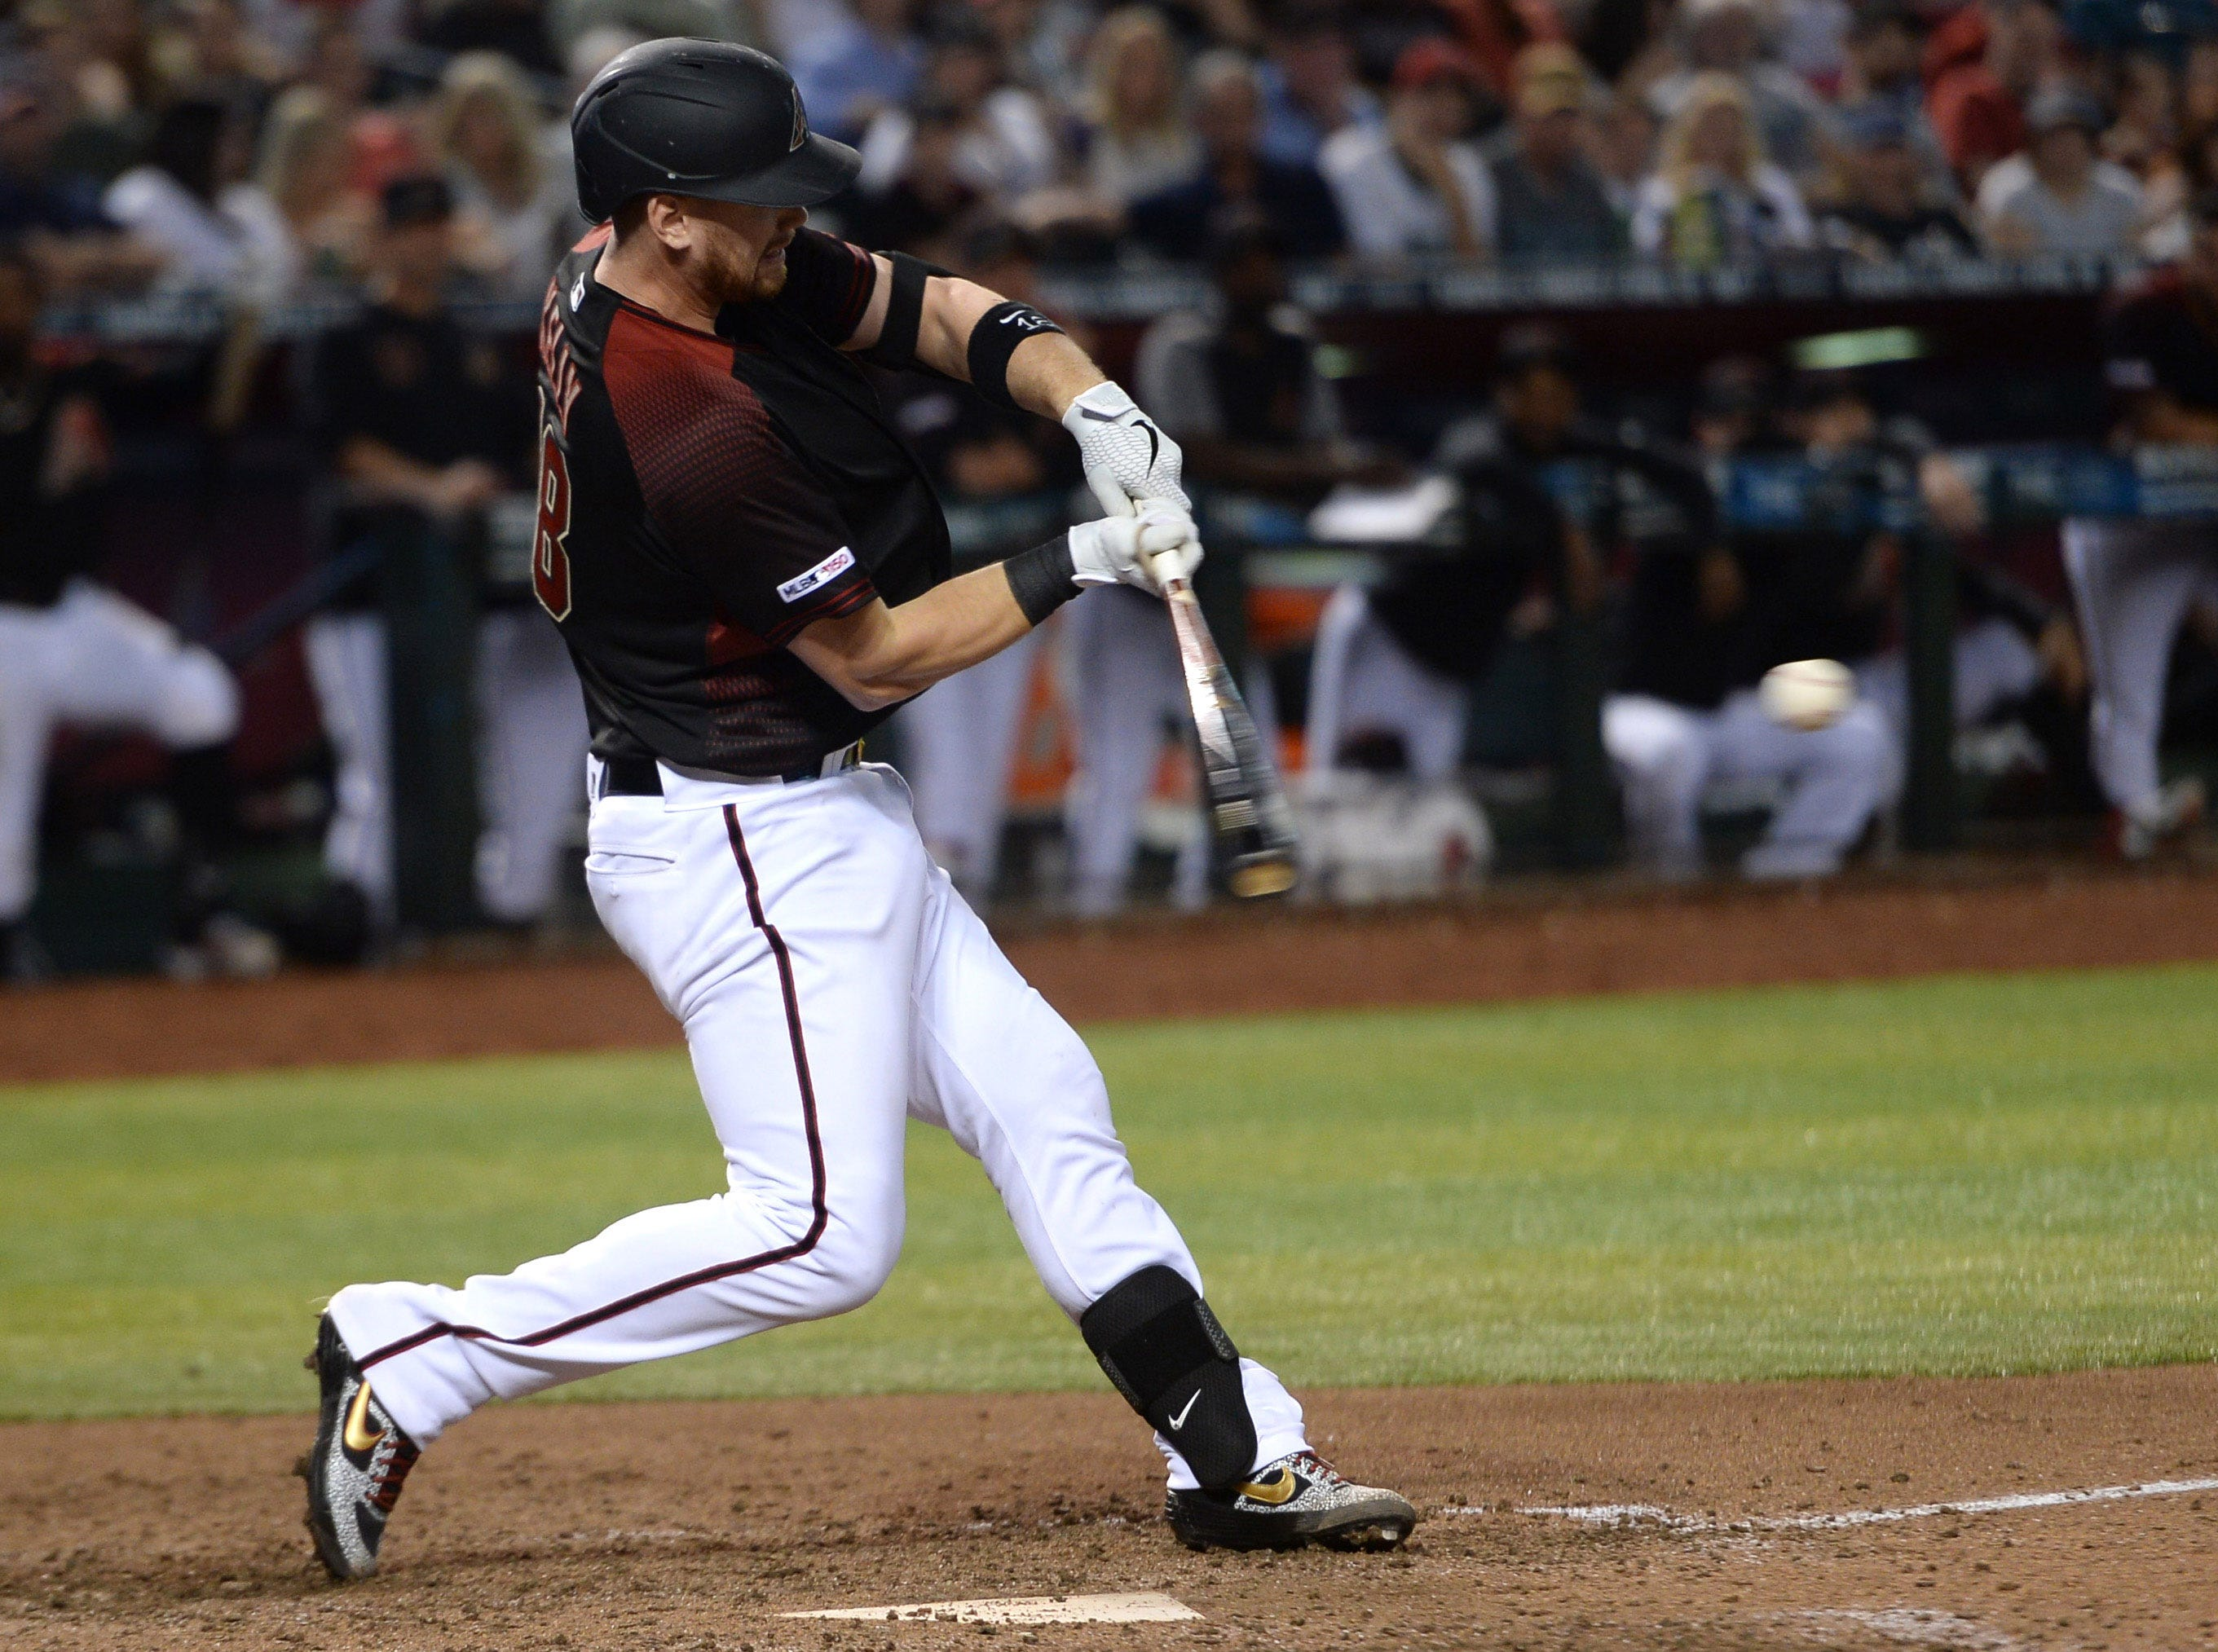 Apr 13, 2019; Phoenix, AZ, USA; Arizona Diamondbacks catcher Carson Kelly (18) hits an RBI single against the San Diego Padres during the sixth inning at Chase Field. Mandatory Credit: Joe Camporeale-USA TODAY Sports